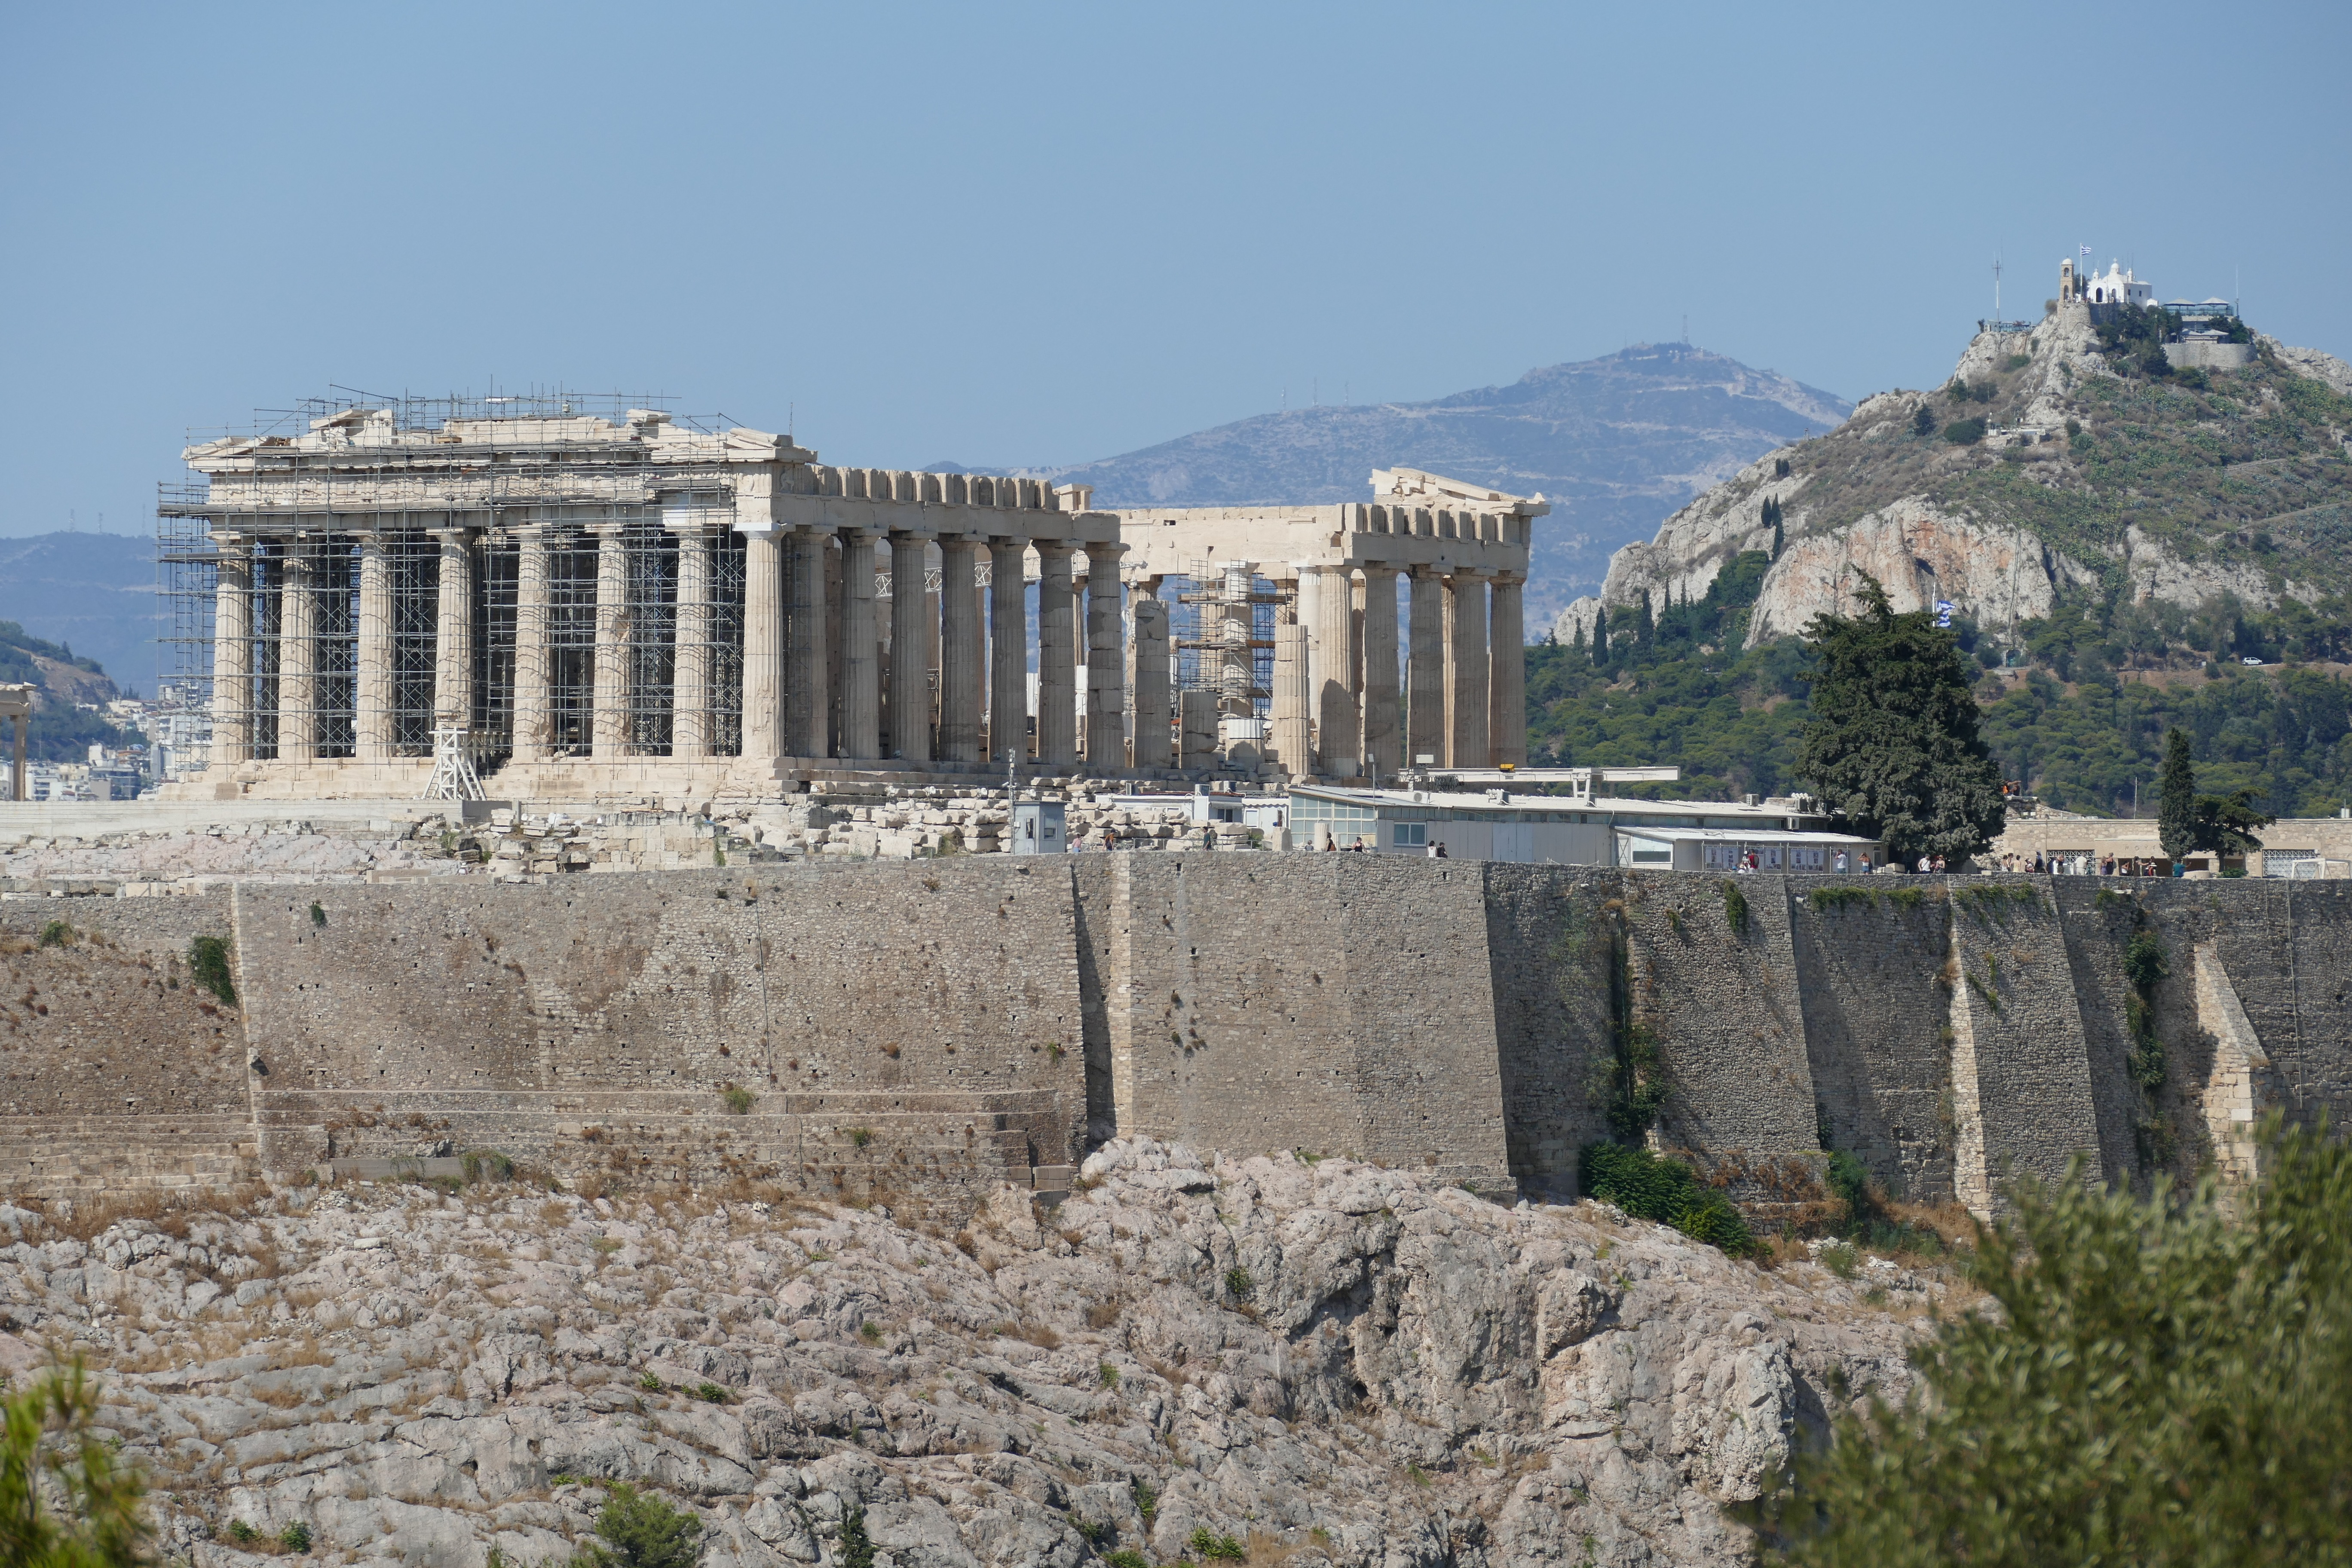 view of the acropolis taken from philopappos monument